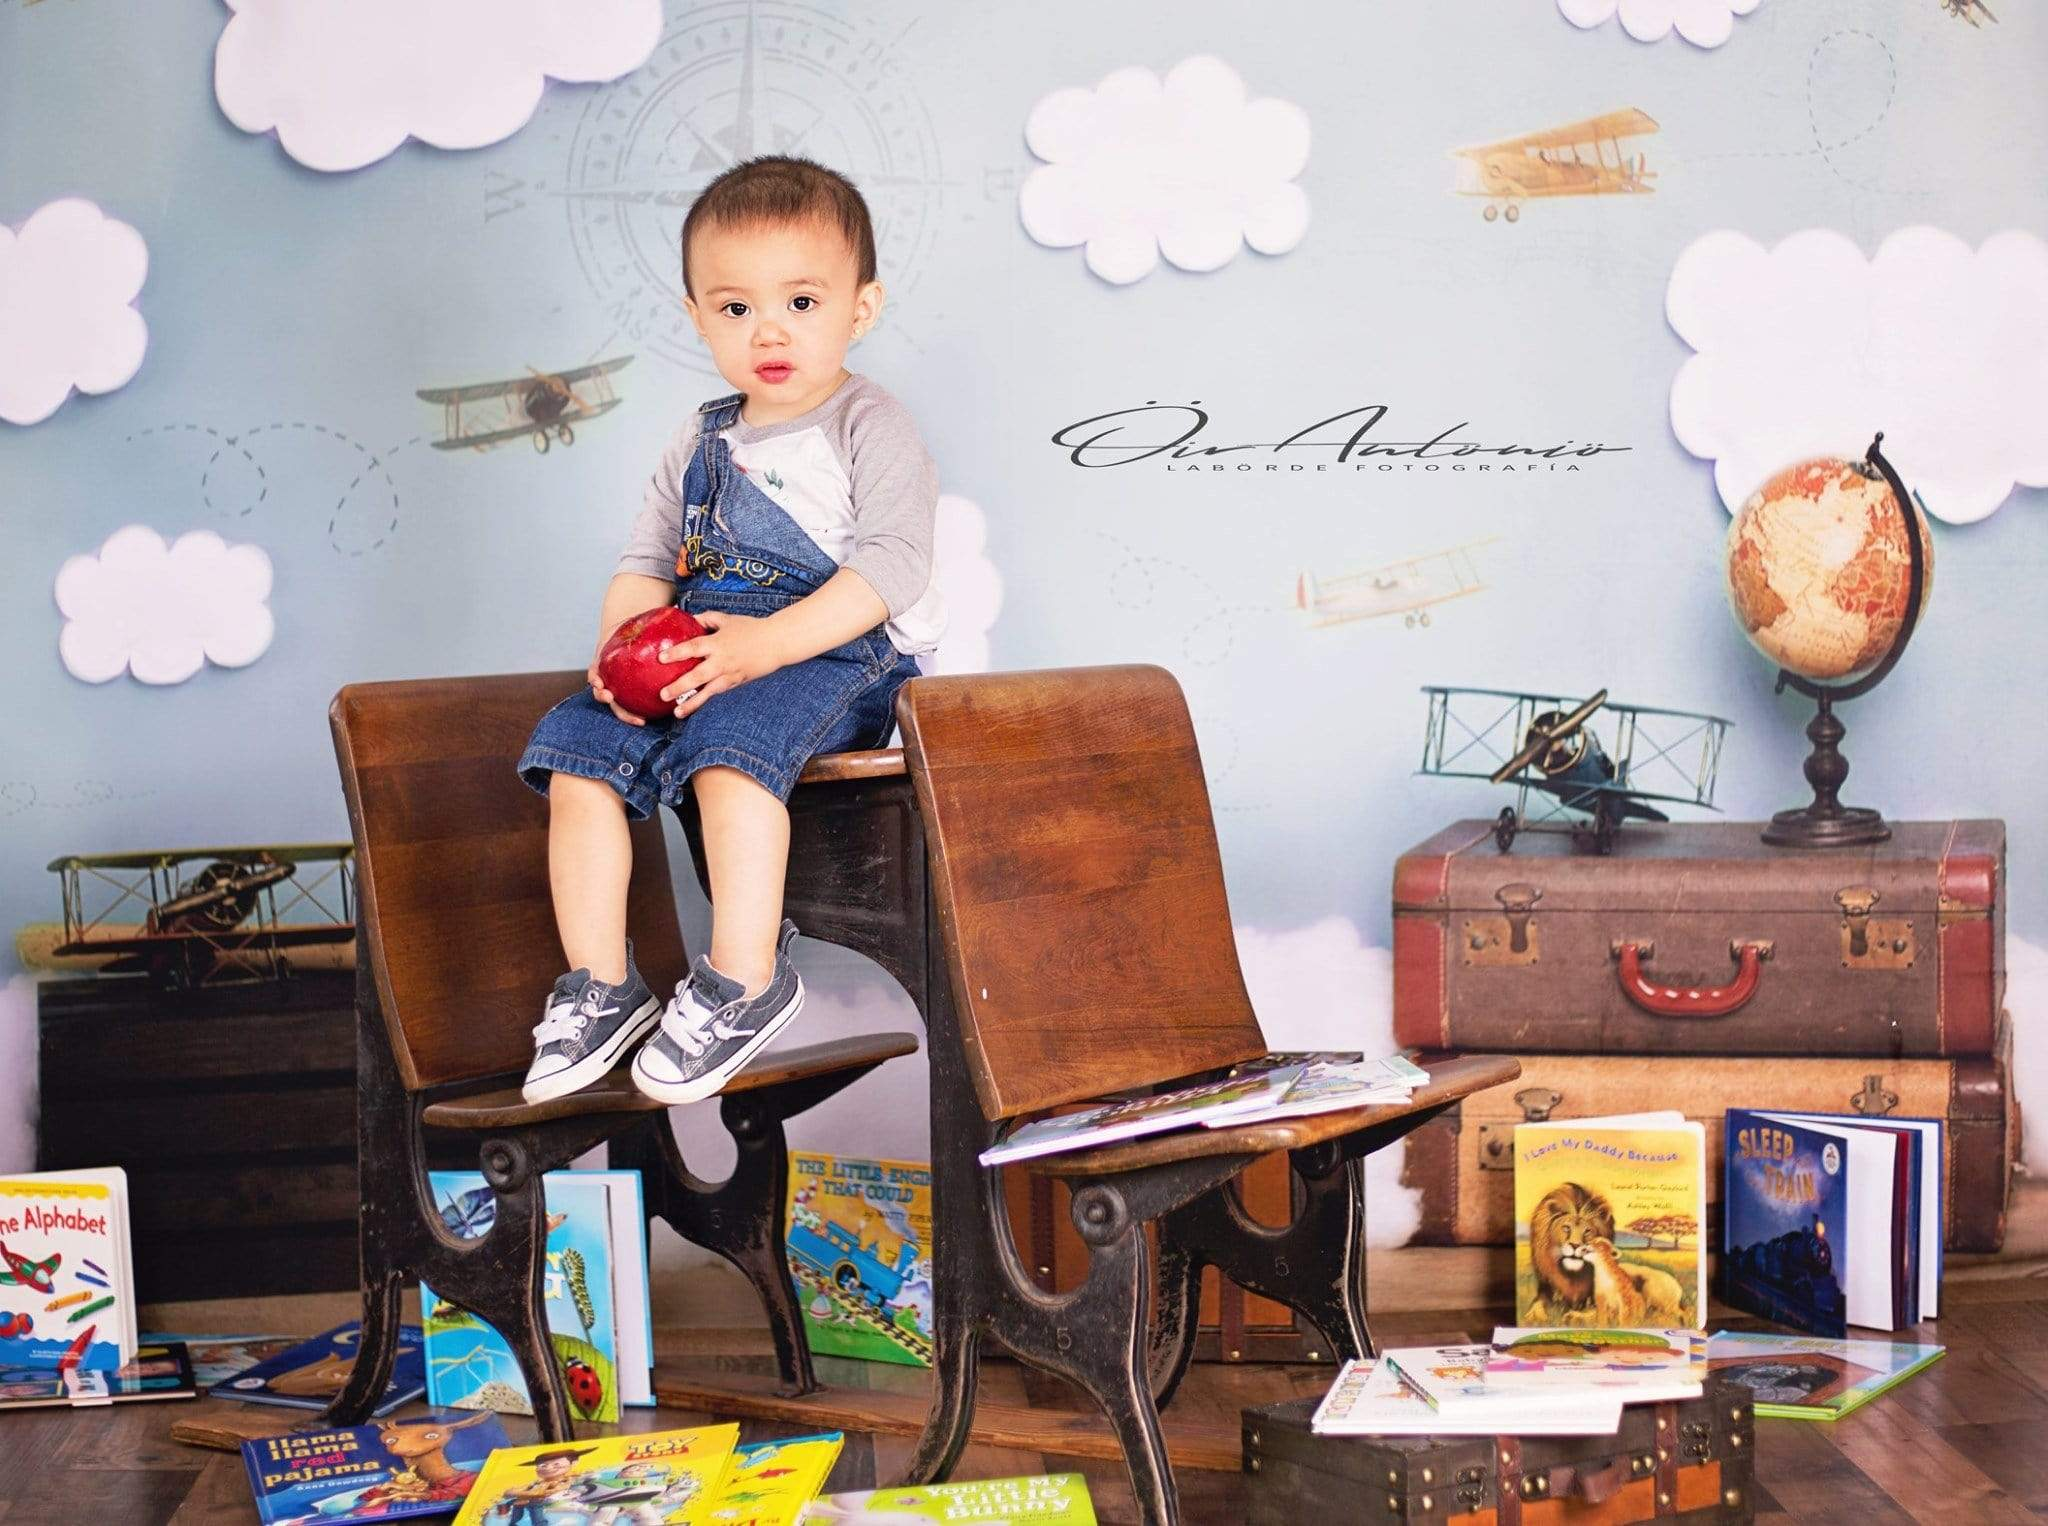 Load image into Gallery viewer, Katebackdrop:Kate Come Fly with Me Cloud Back to School Children Backdrop for Photography Designed by Erin Larkins